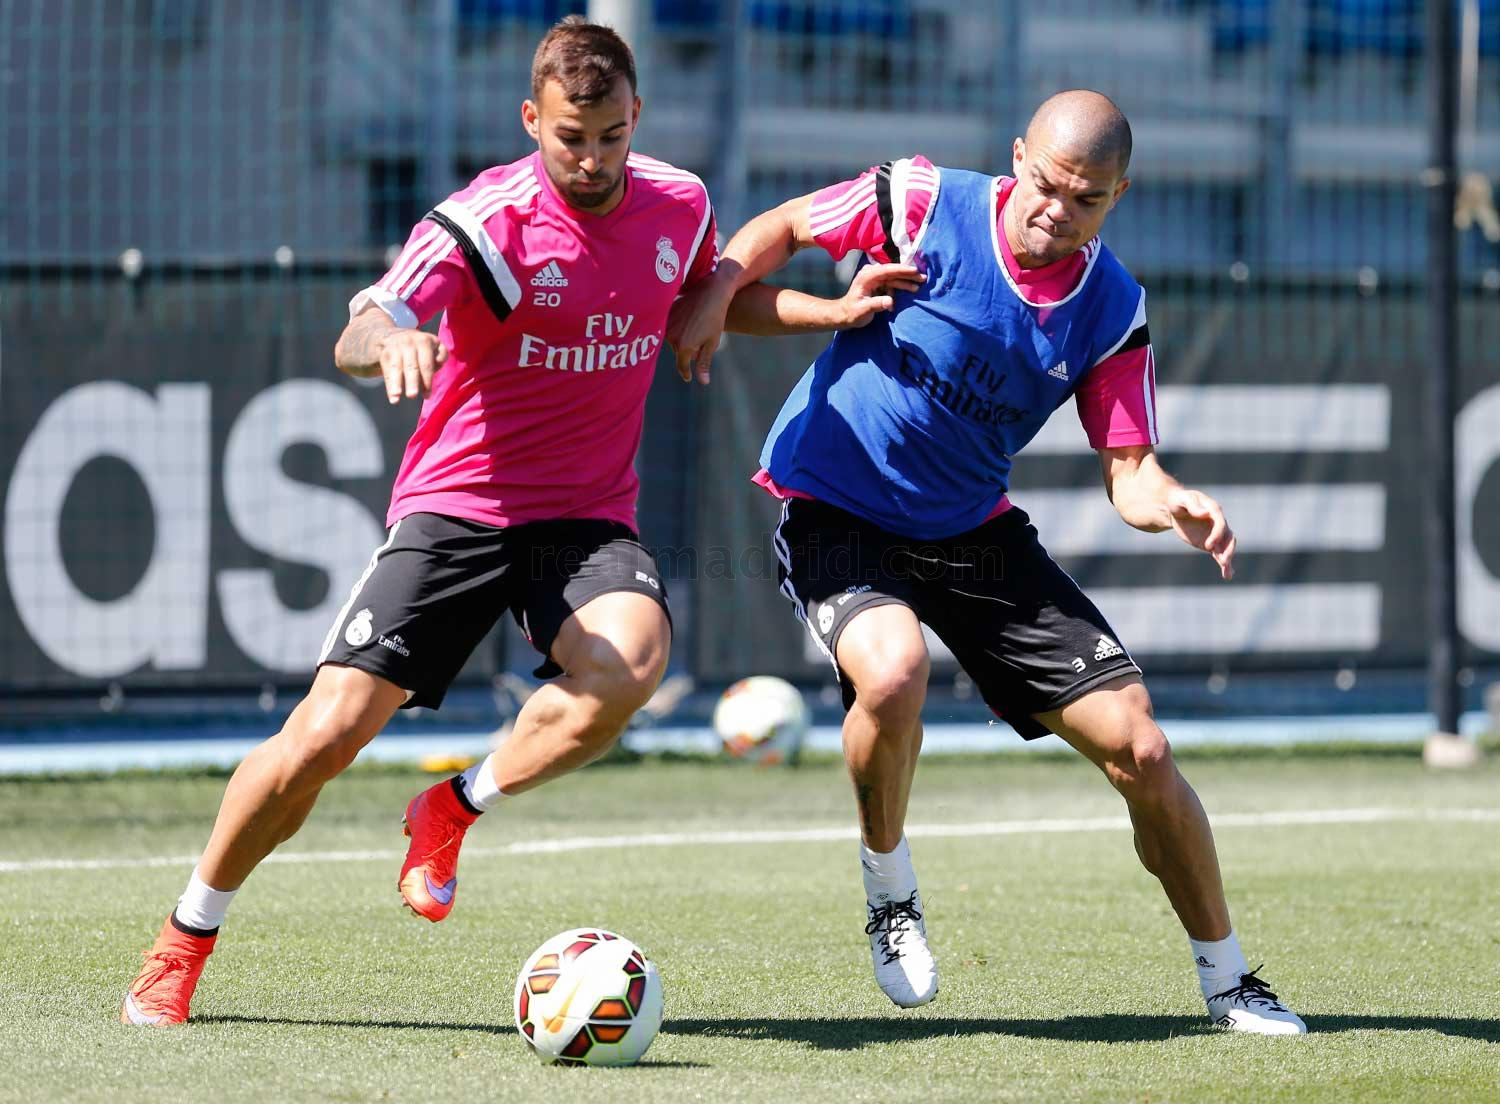 Real Madrid - Entrenamiento del Real Madrid - 21-05-2015